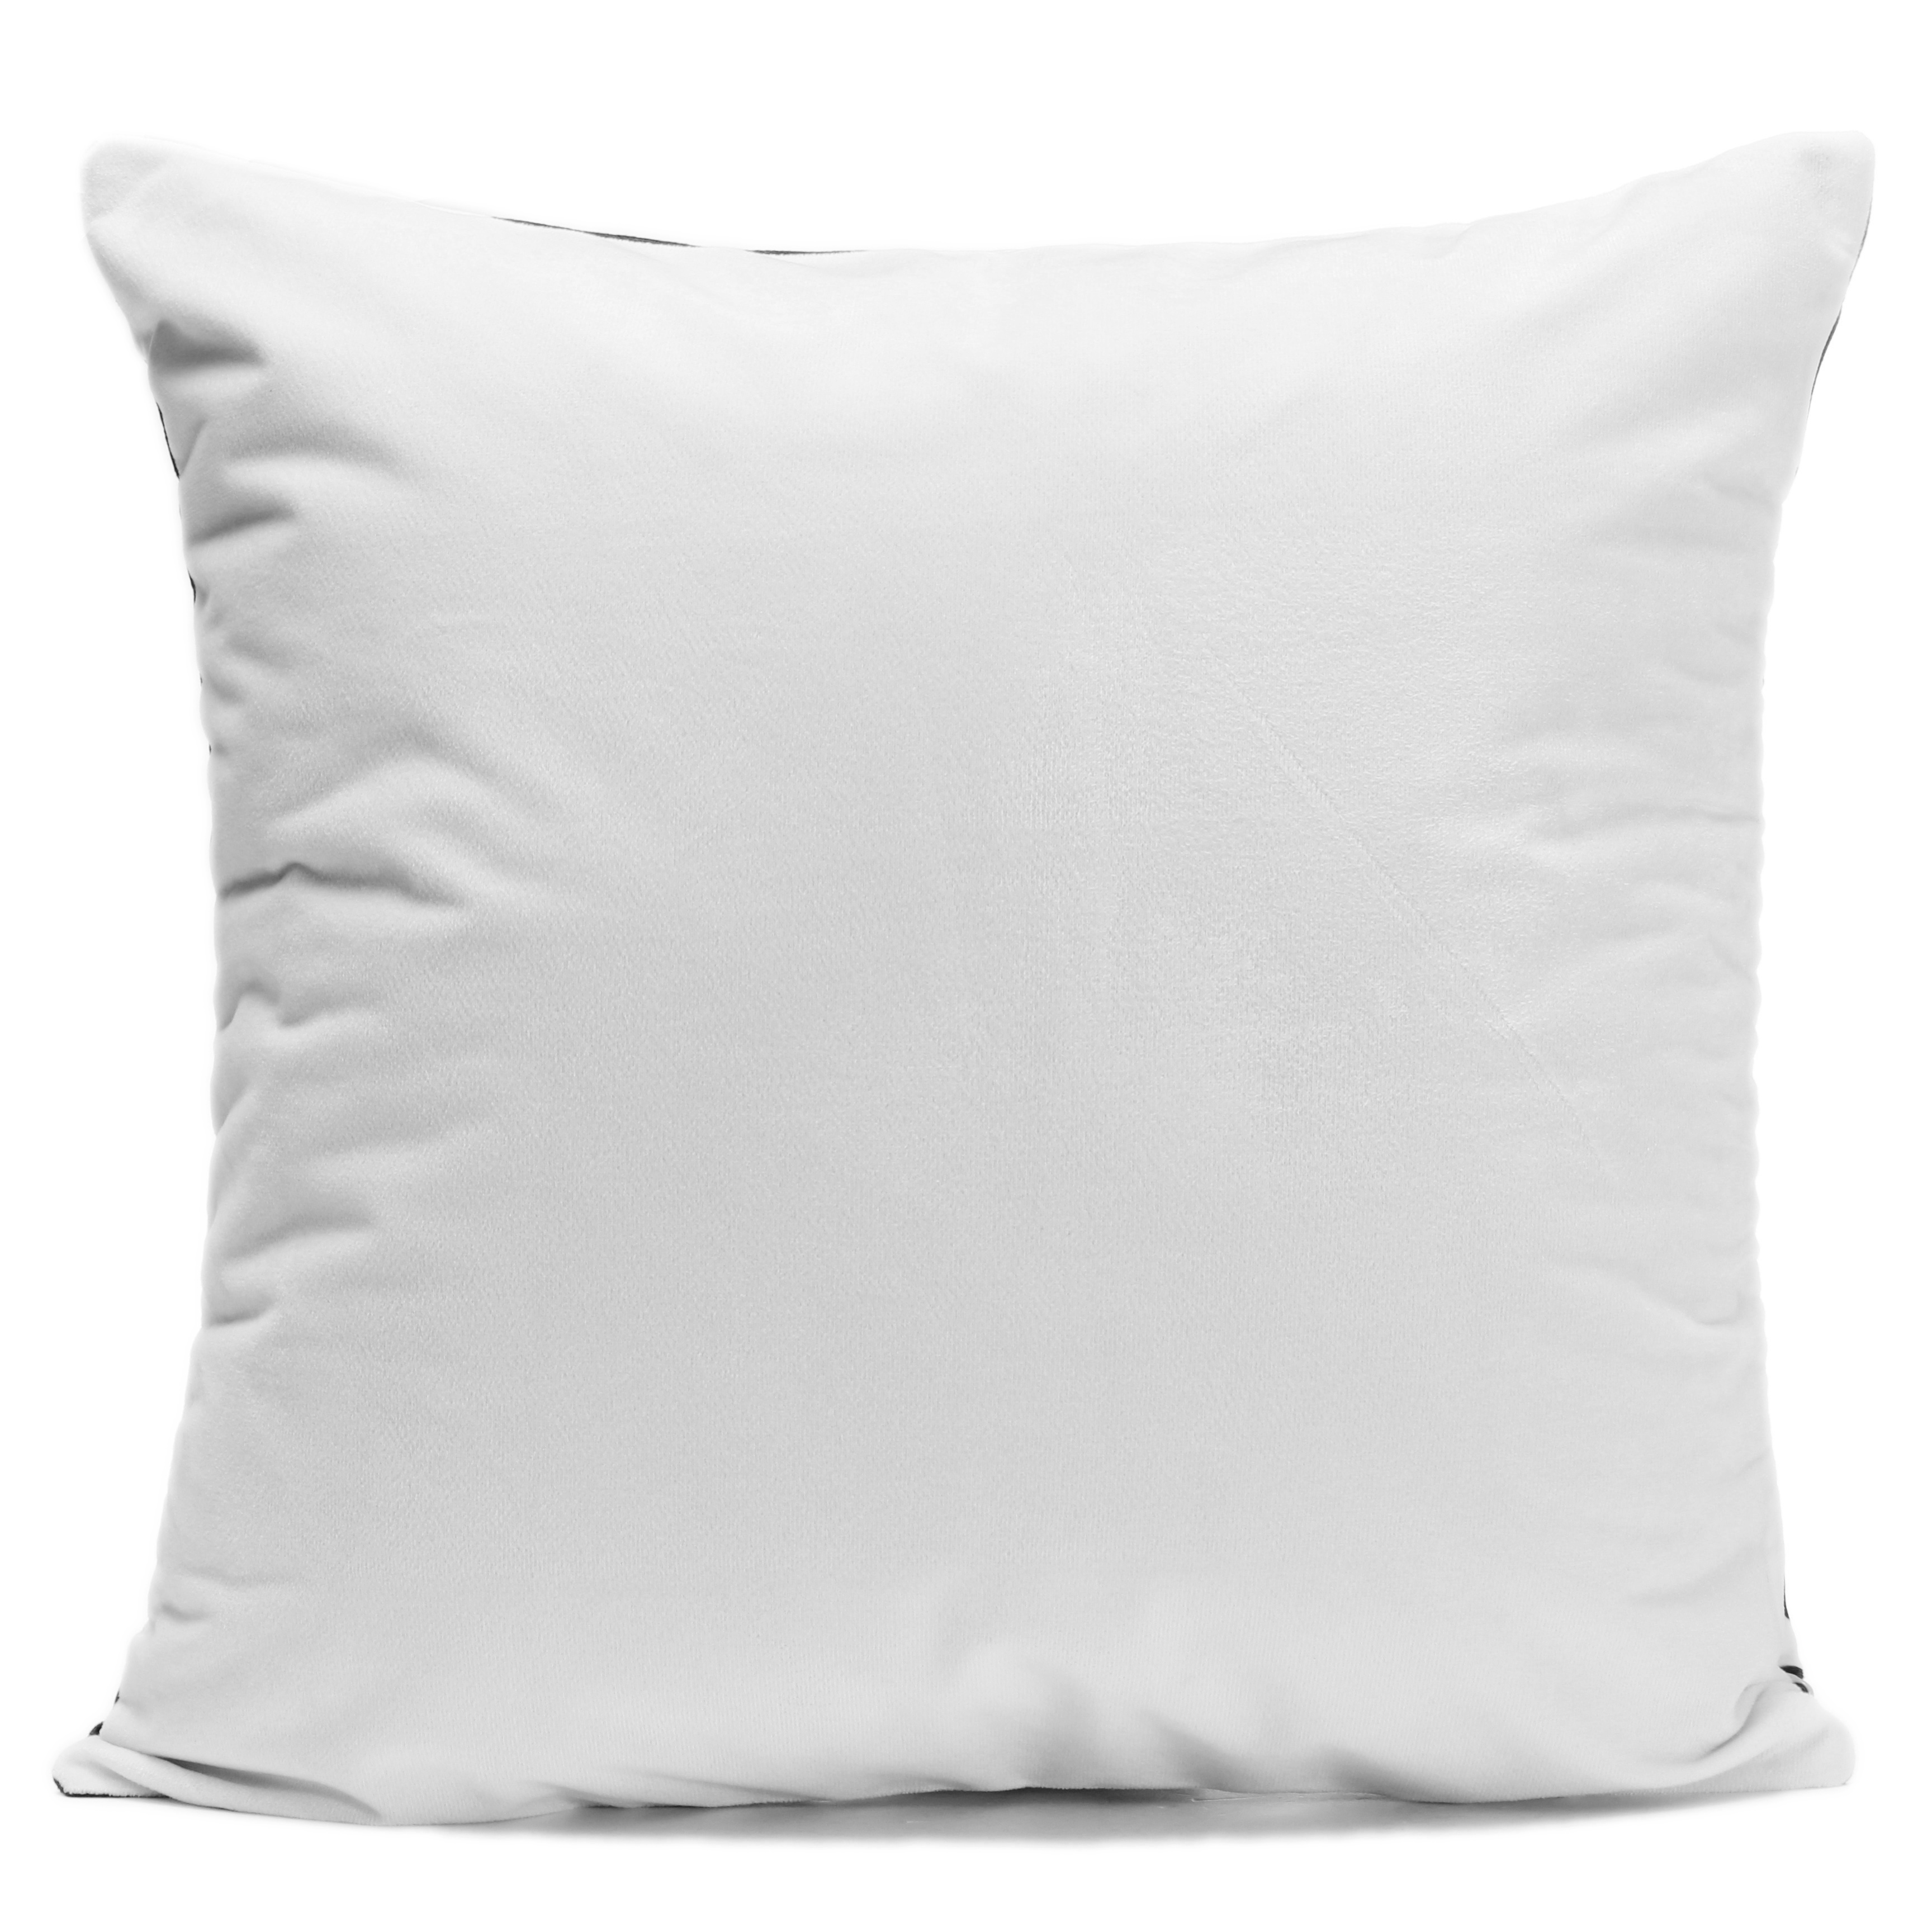 Add unforgettable accents to your room with plush and decorative custom pillows from Shutterfly. We offer an array of comfortable indoor and outdoor pillows .